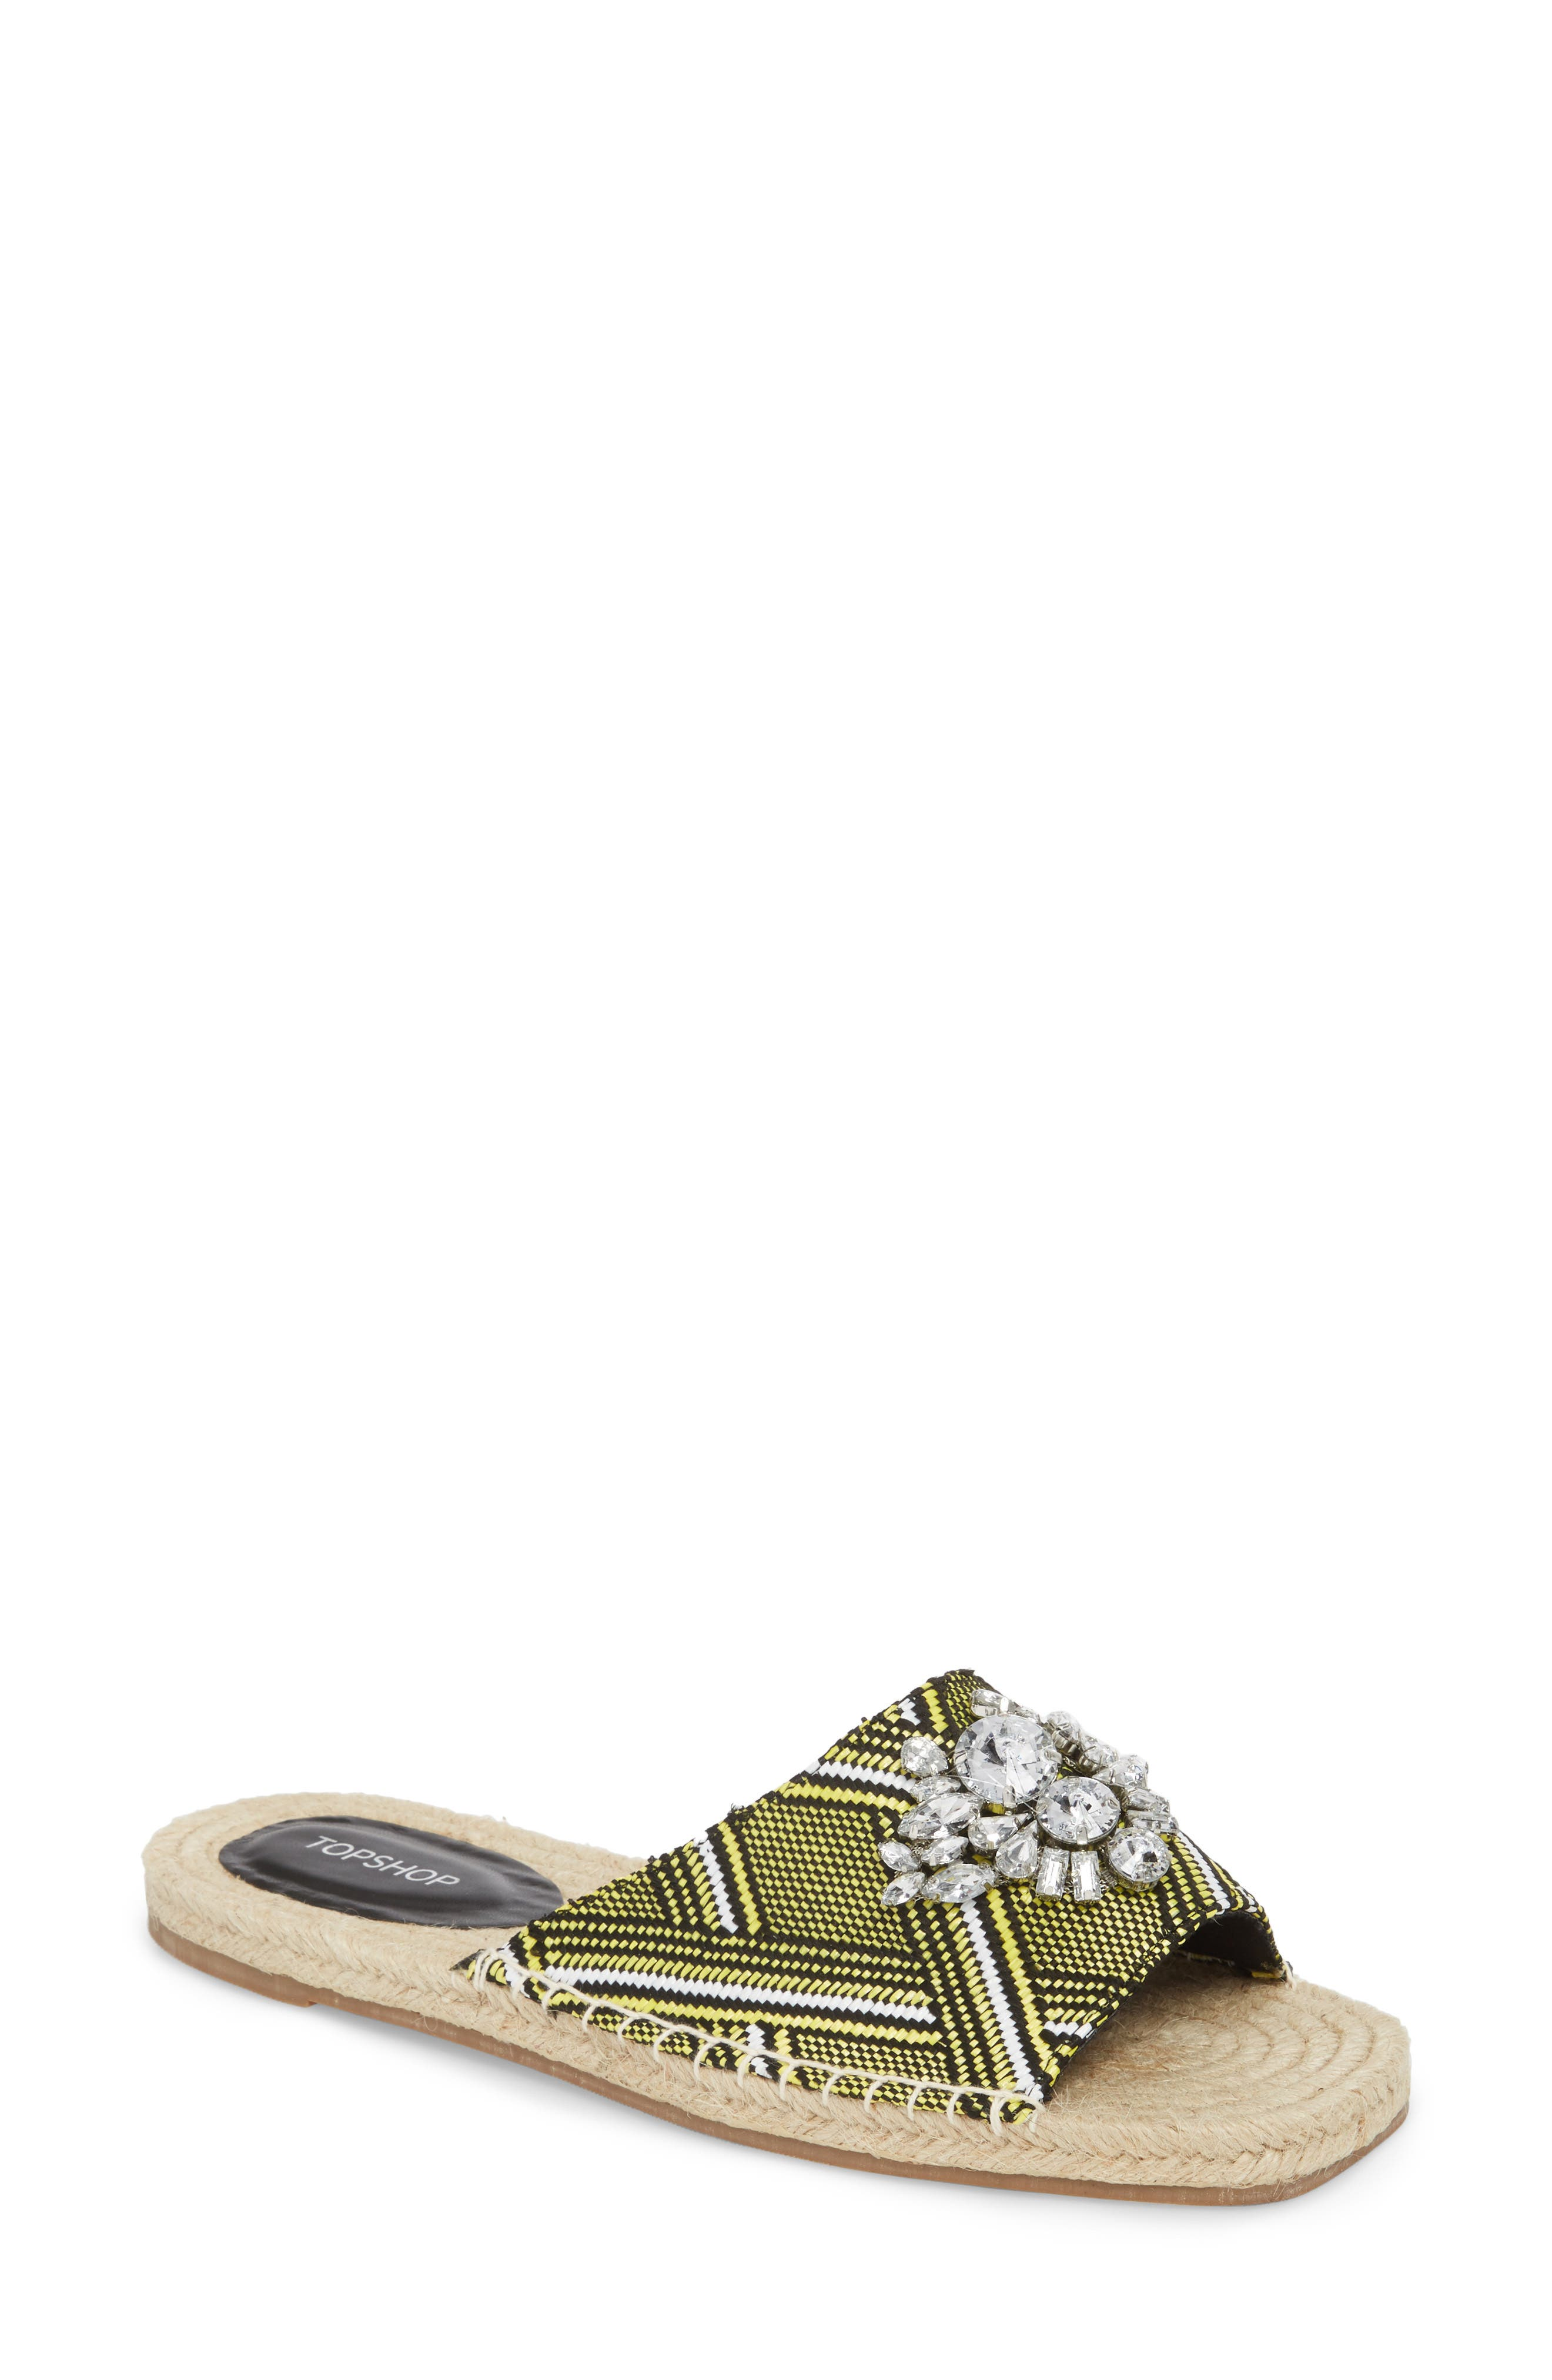 Hey Espadrille Square Slider Sandals,                             Main thumbnail 1, color,                             Yellow Multi